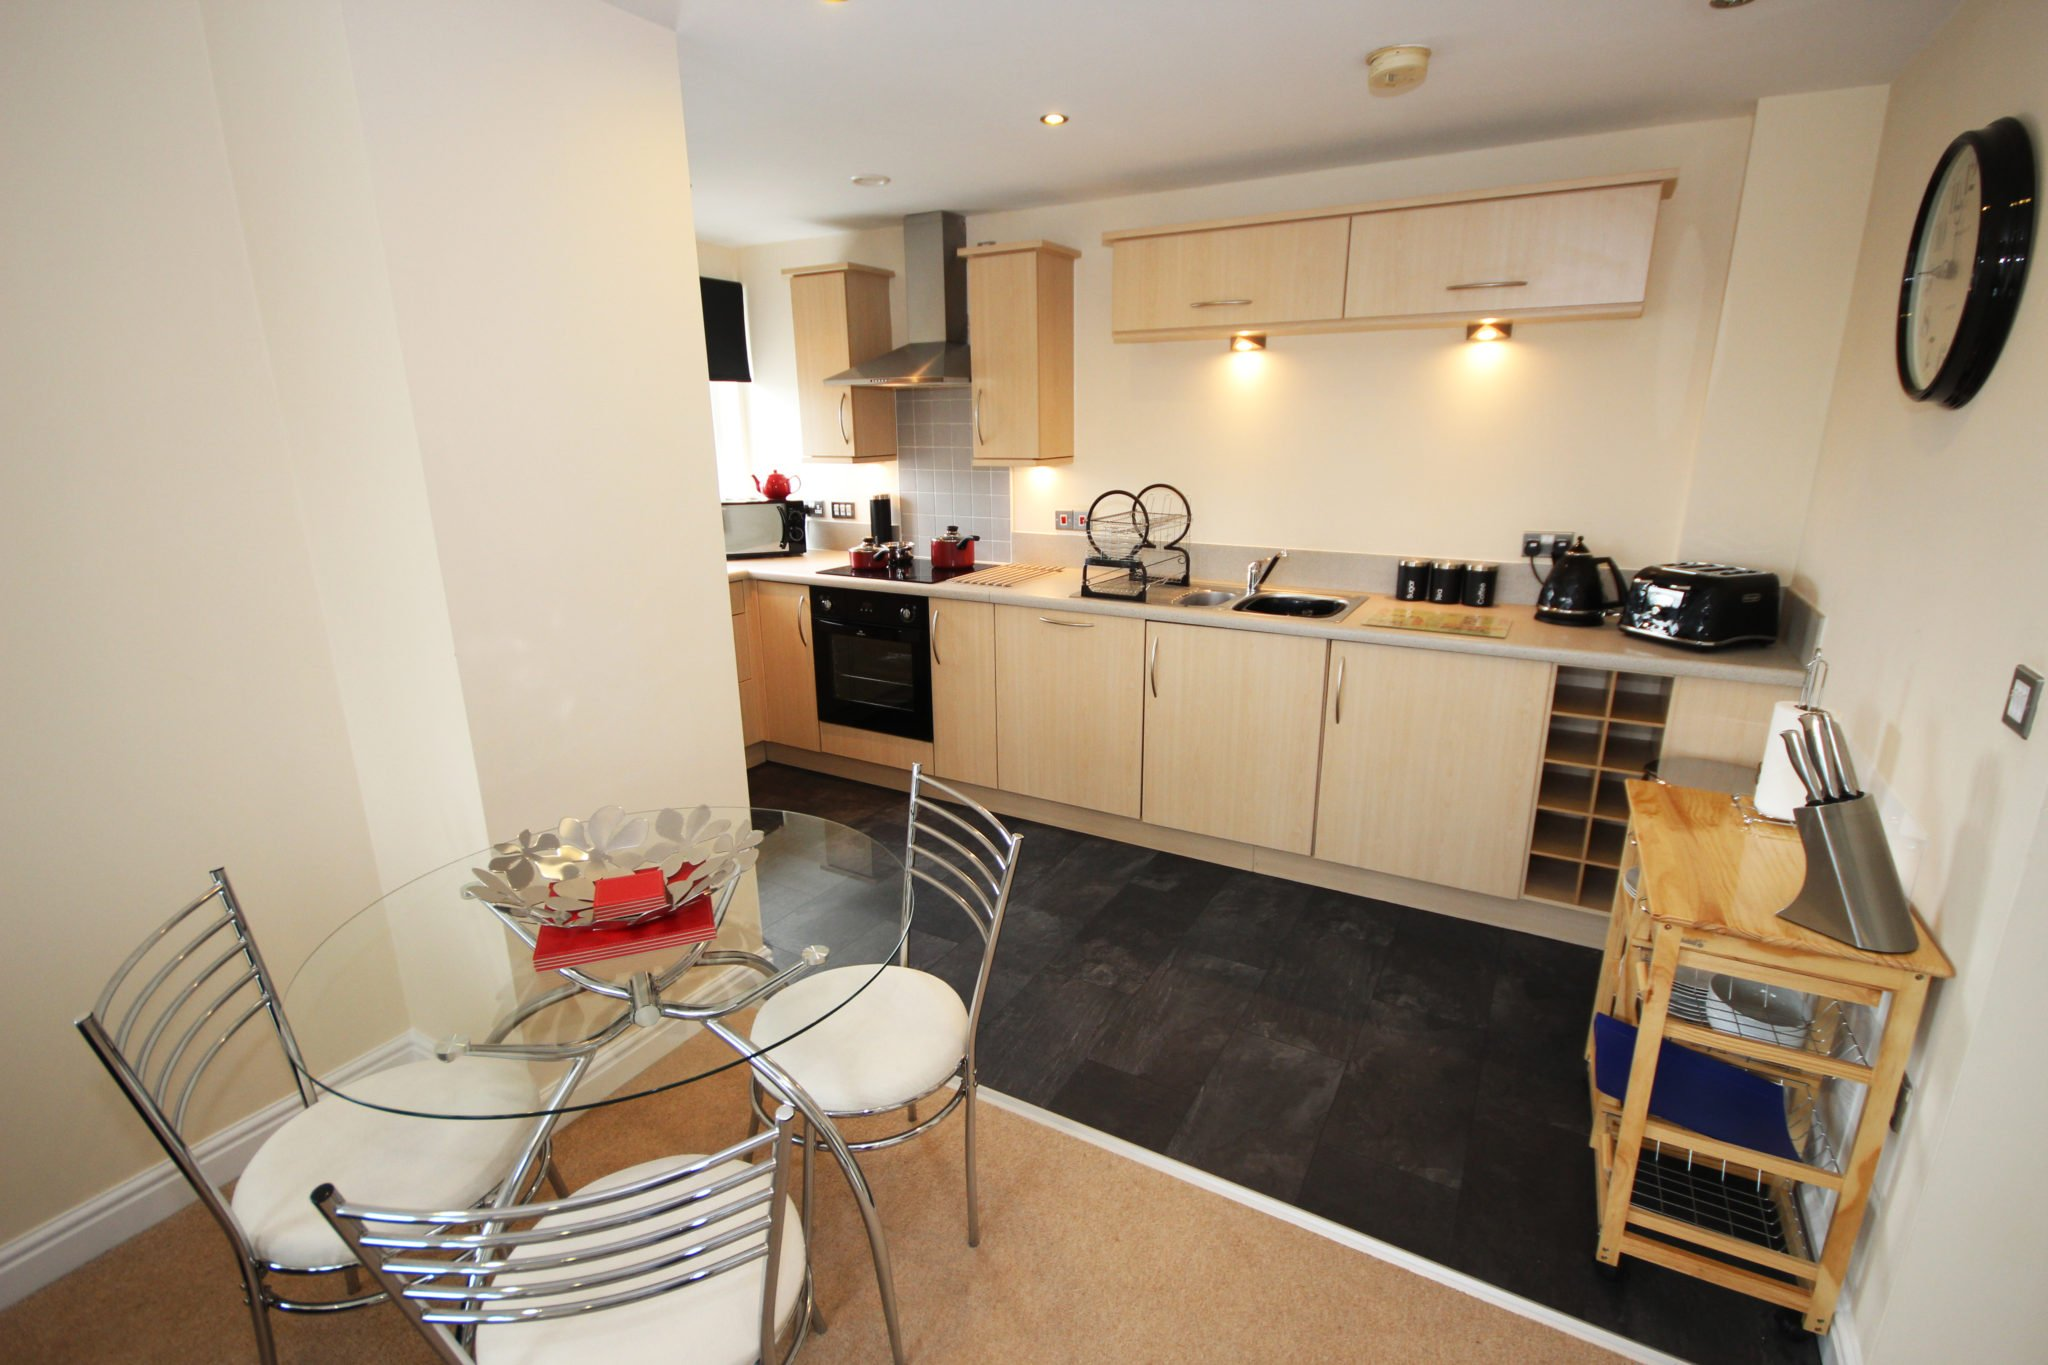 Short-Lets-Newcastle-UK-available-Now!-Book-Serviced-Apartments-in-Central-Newcastle-with-free-Wifi,-Cleaning,-Lift,-24h-Reception-&-All-Bills-Incl!-30%-Off-|-Urban-Stay